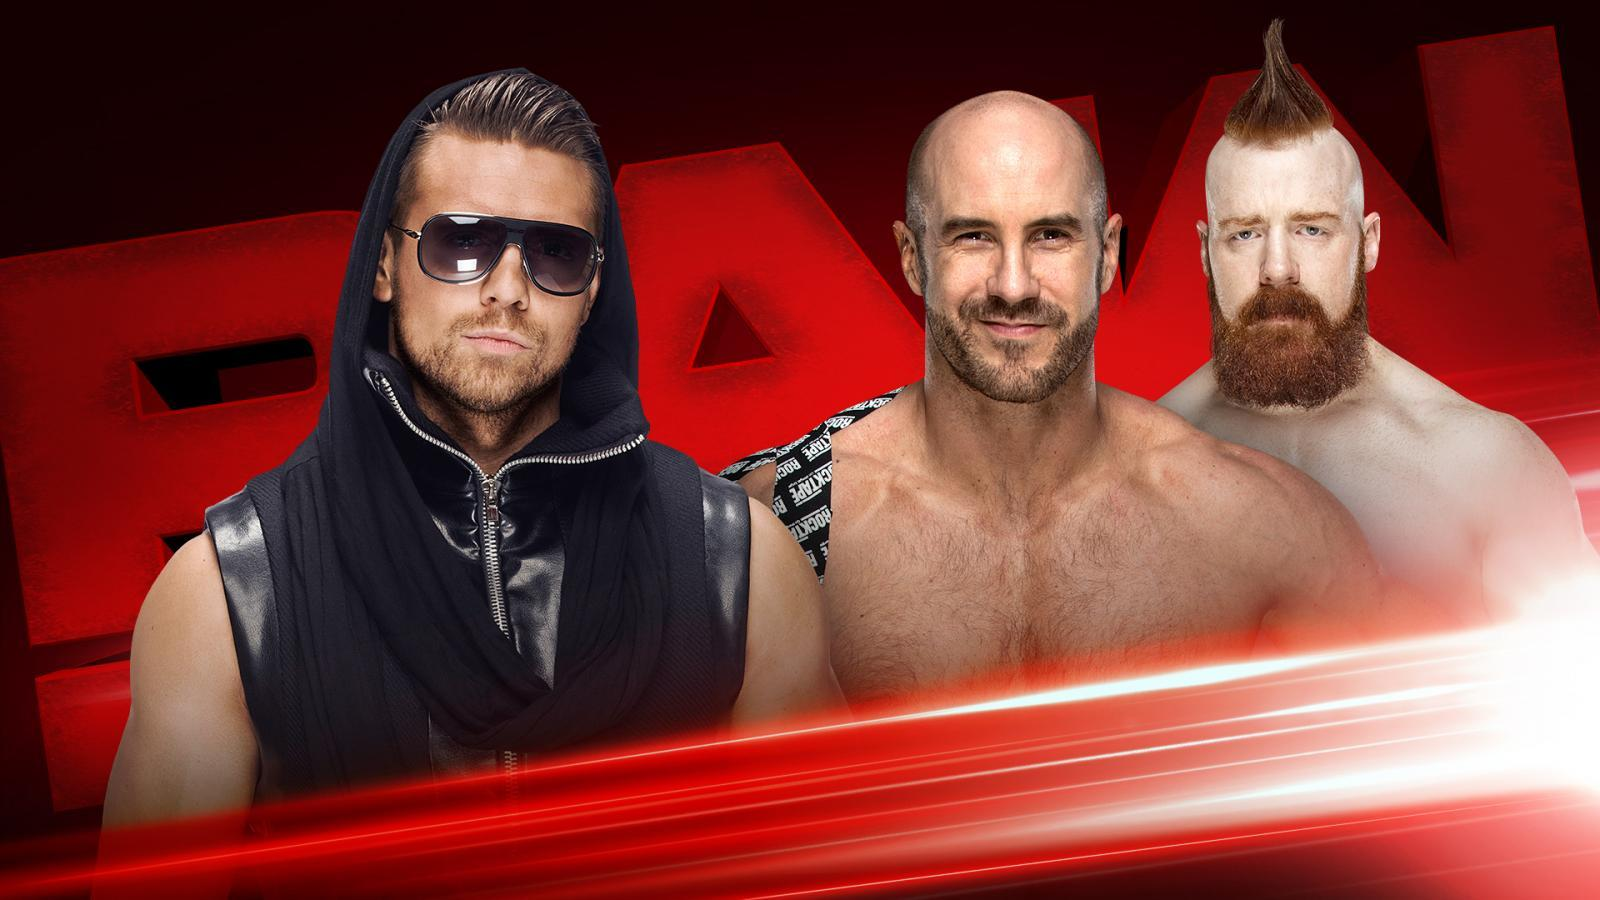 Wwe Raw Live Updates Results And Reaction For October 9 Bleacher